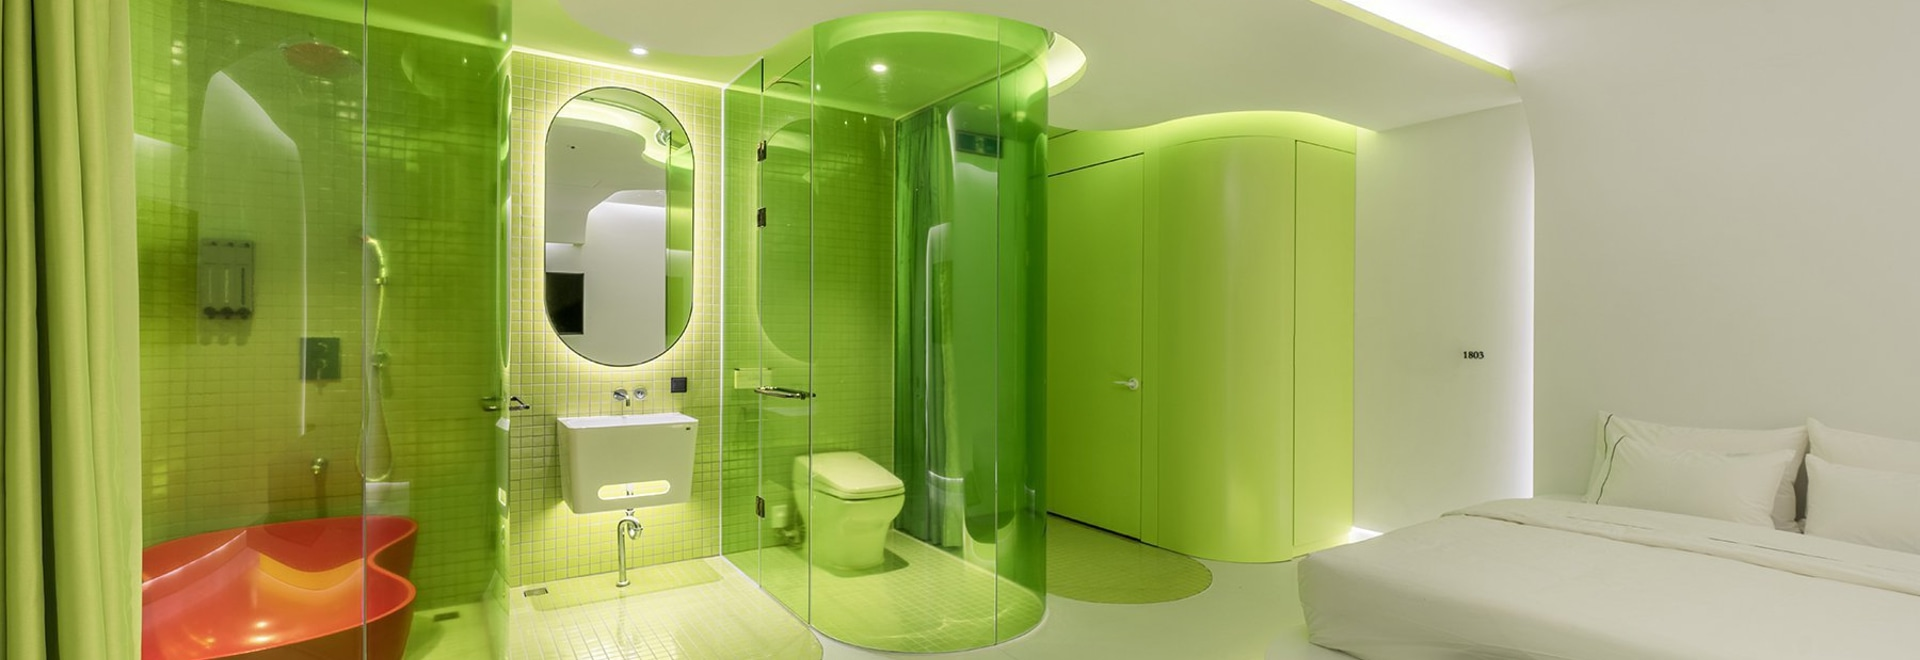 SML's lime-green suite resembles a futuristic spaceship cabin